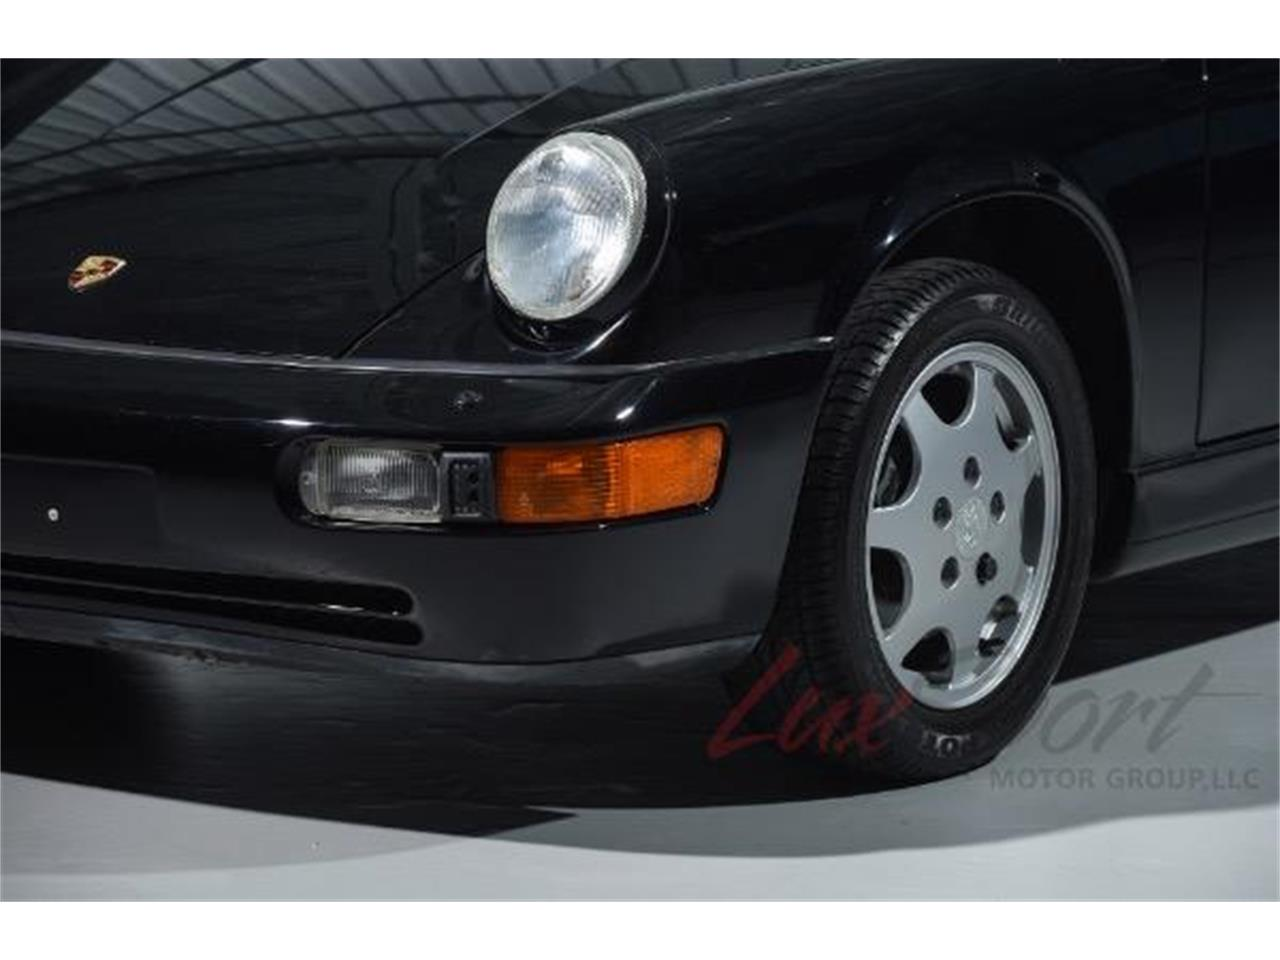 Large Picture of 1990 964 Carrera 4 Cabriolet located in New Hyde Park New York - $39,995.00 - MGT0